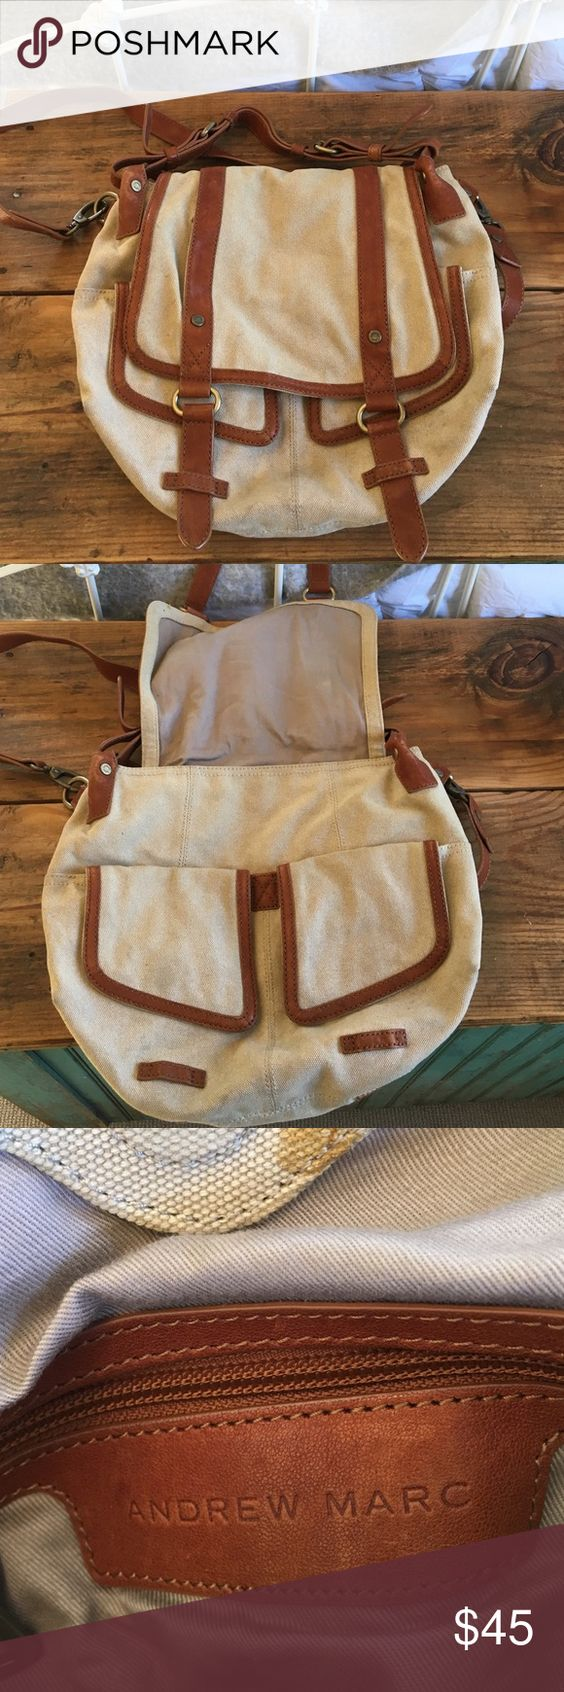 Andrew Marc Canvas Bag Beige/cream colored bag with brown leather. Double pockets in the front with magnet clips. Short and long leather straps. There are a few stains throughout. Feel free to ask questions! Andrew Marc Bags Satchels